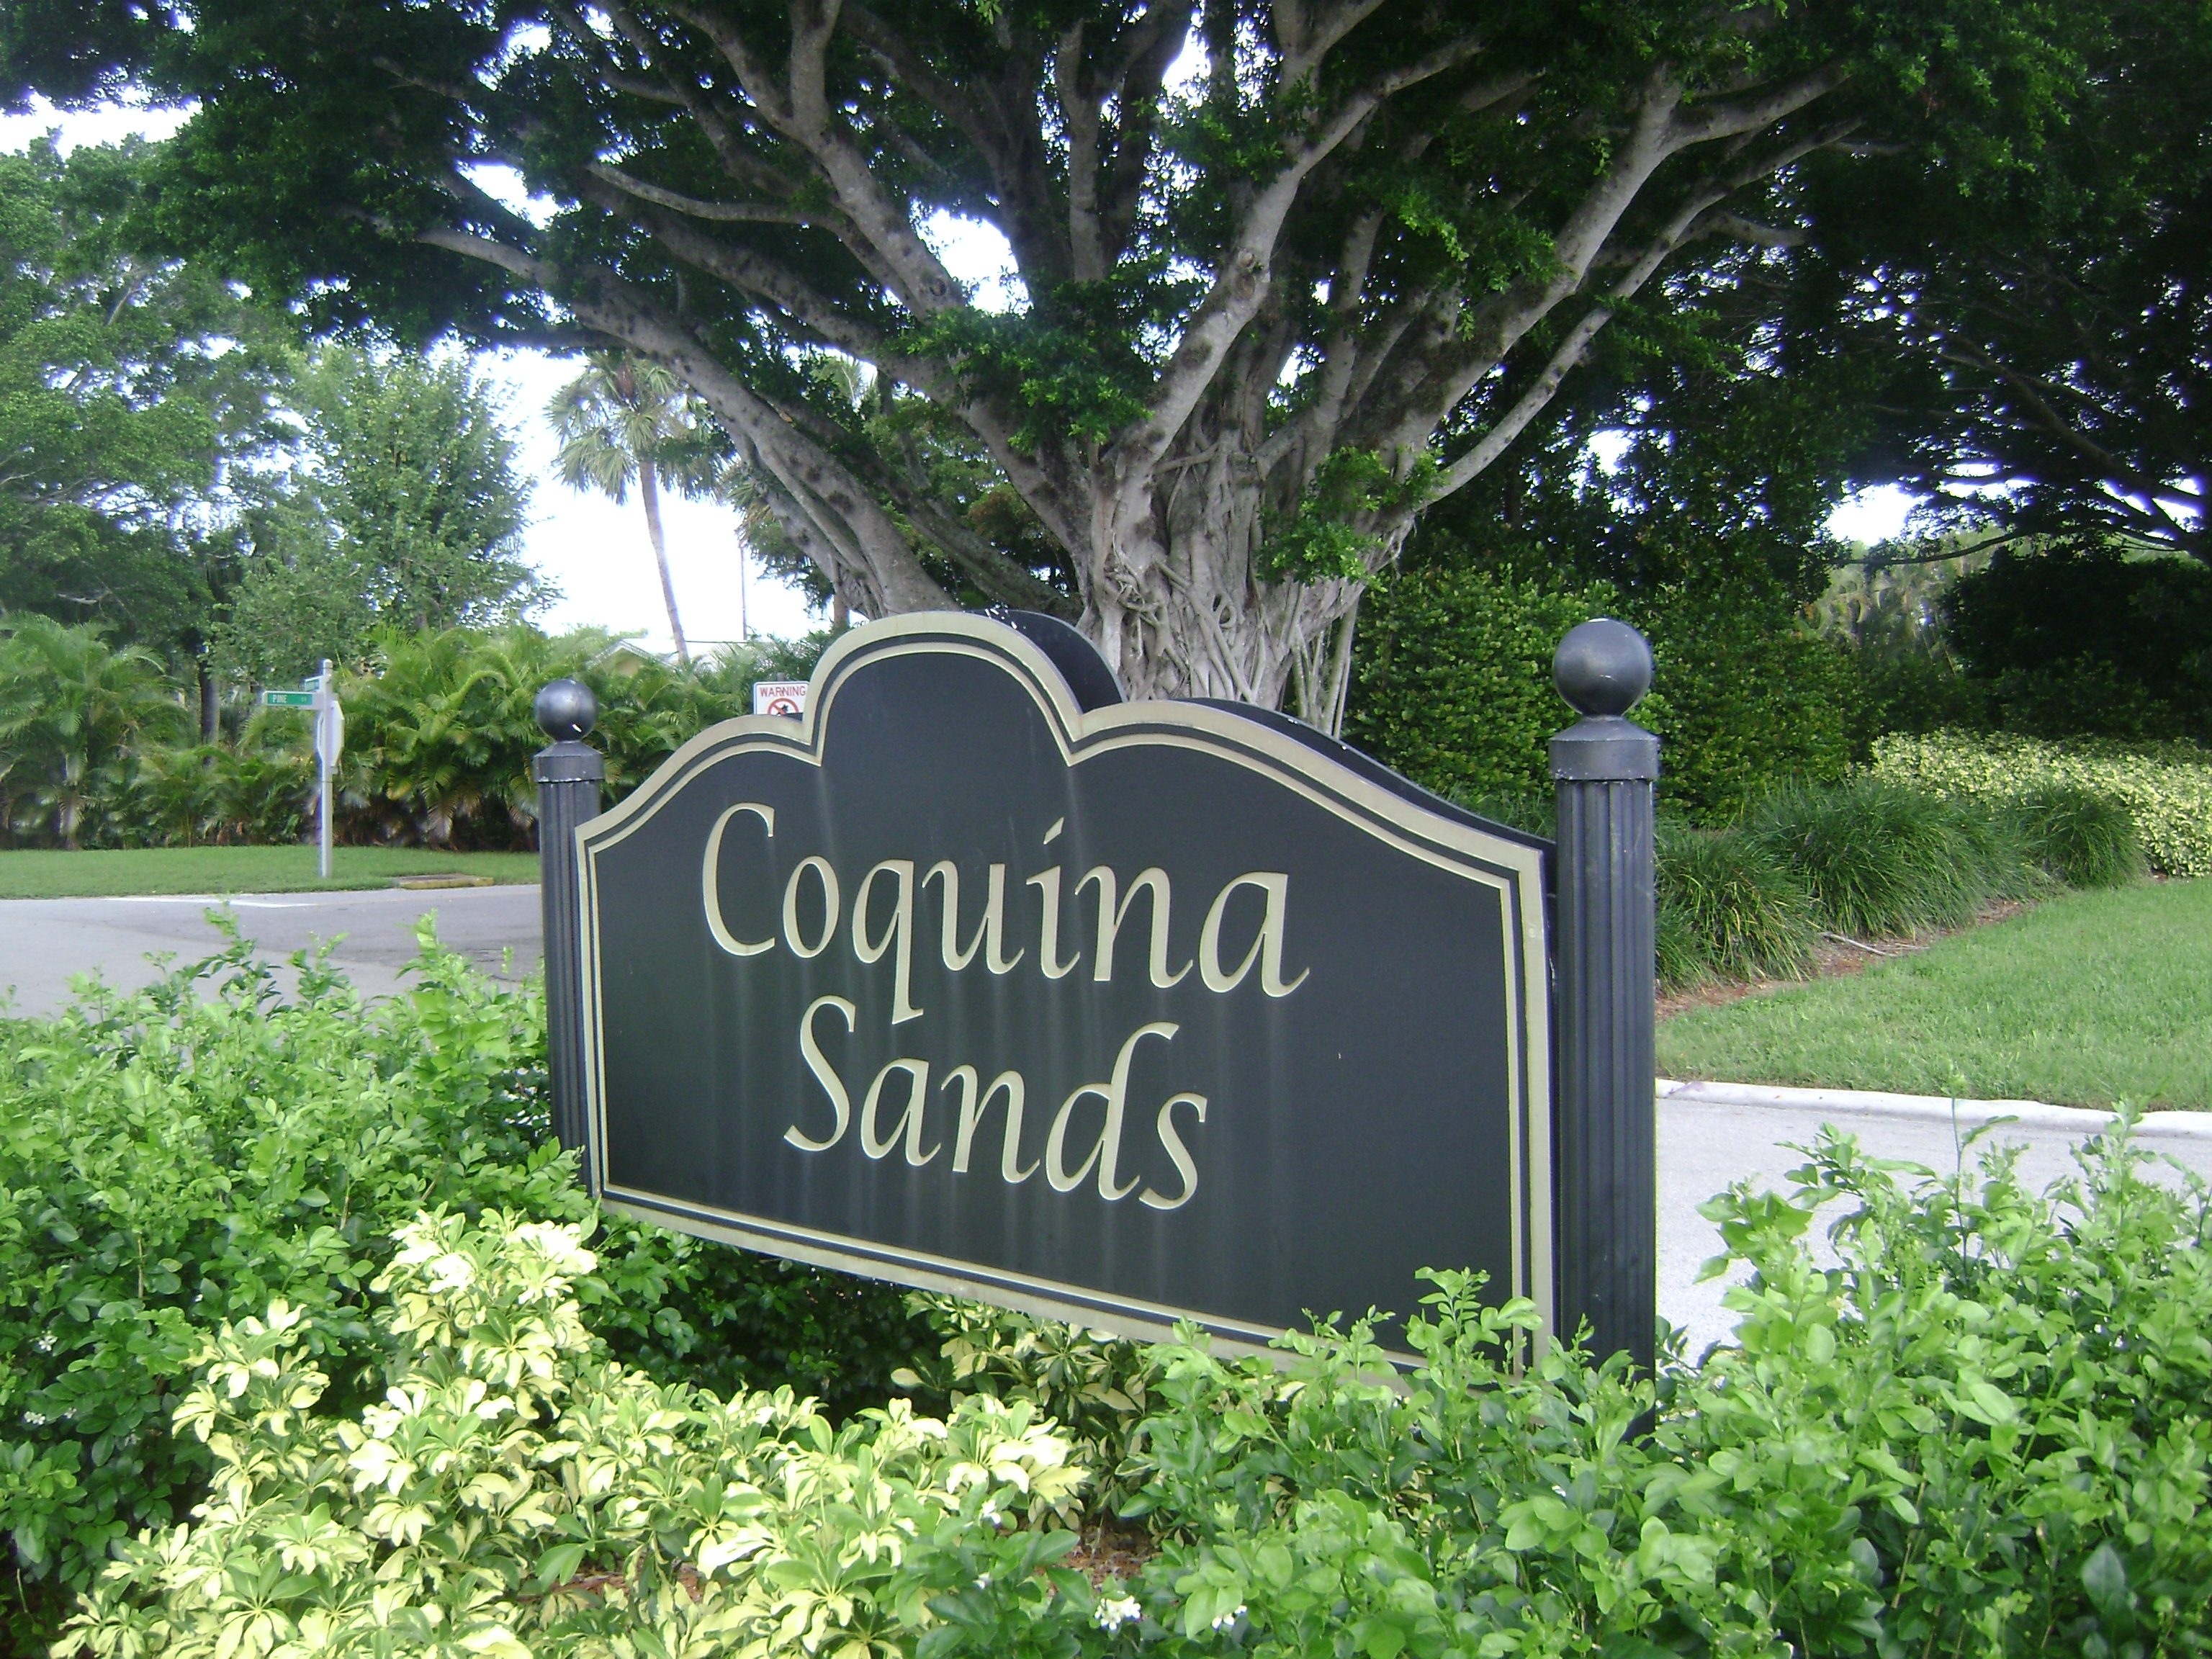 Sign at Coquina Sands in Naples, Florida.